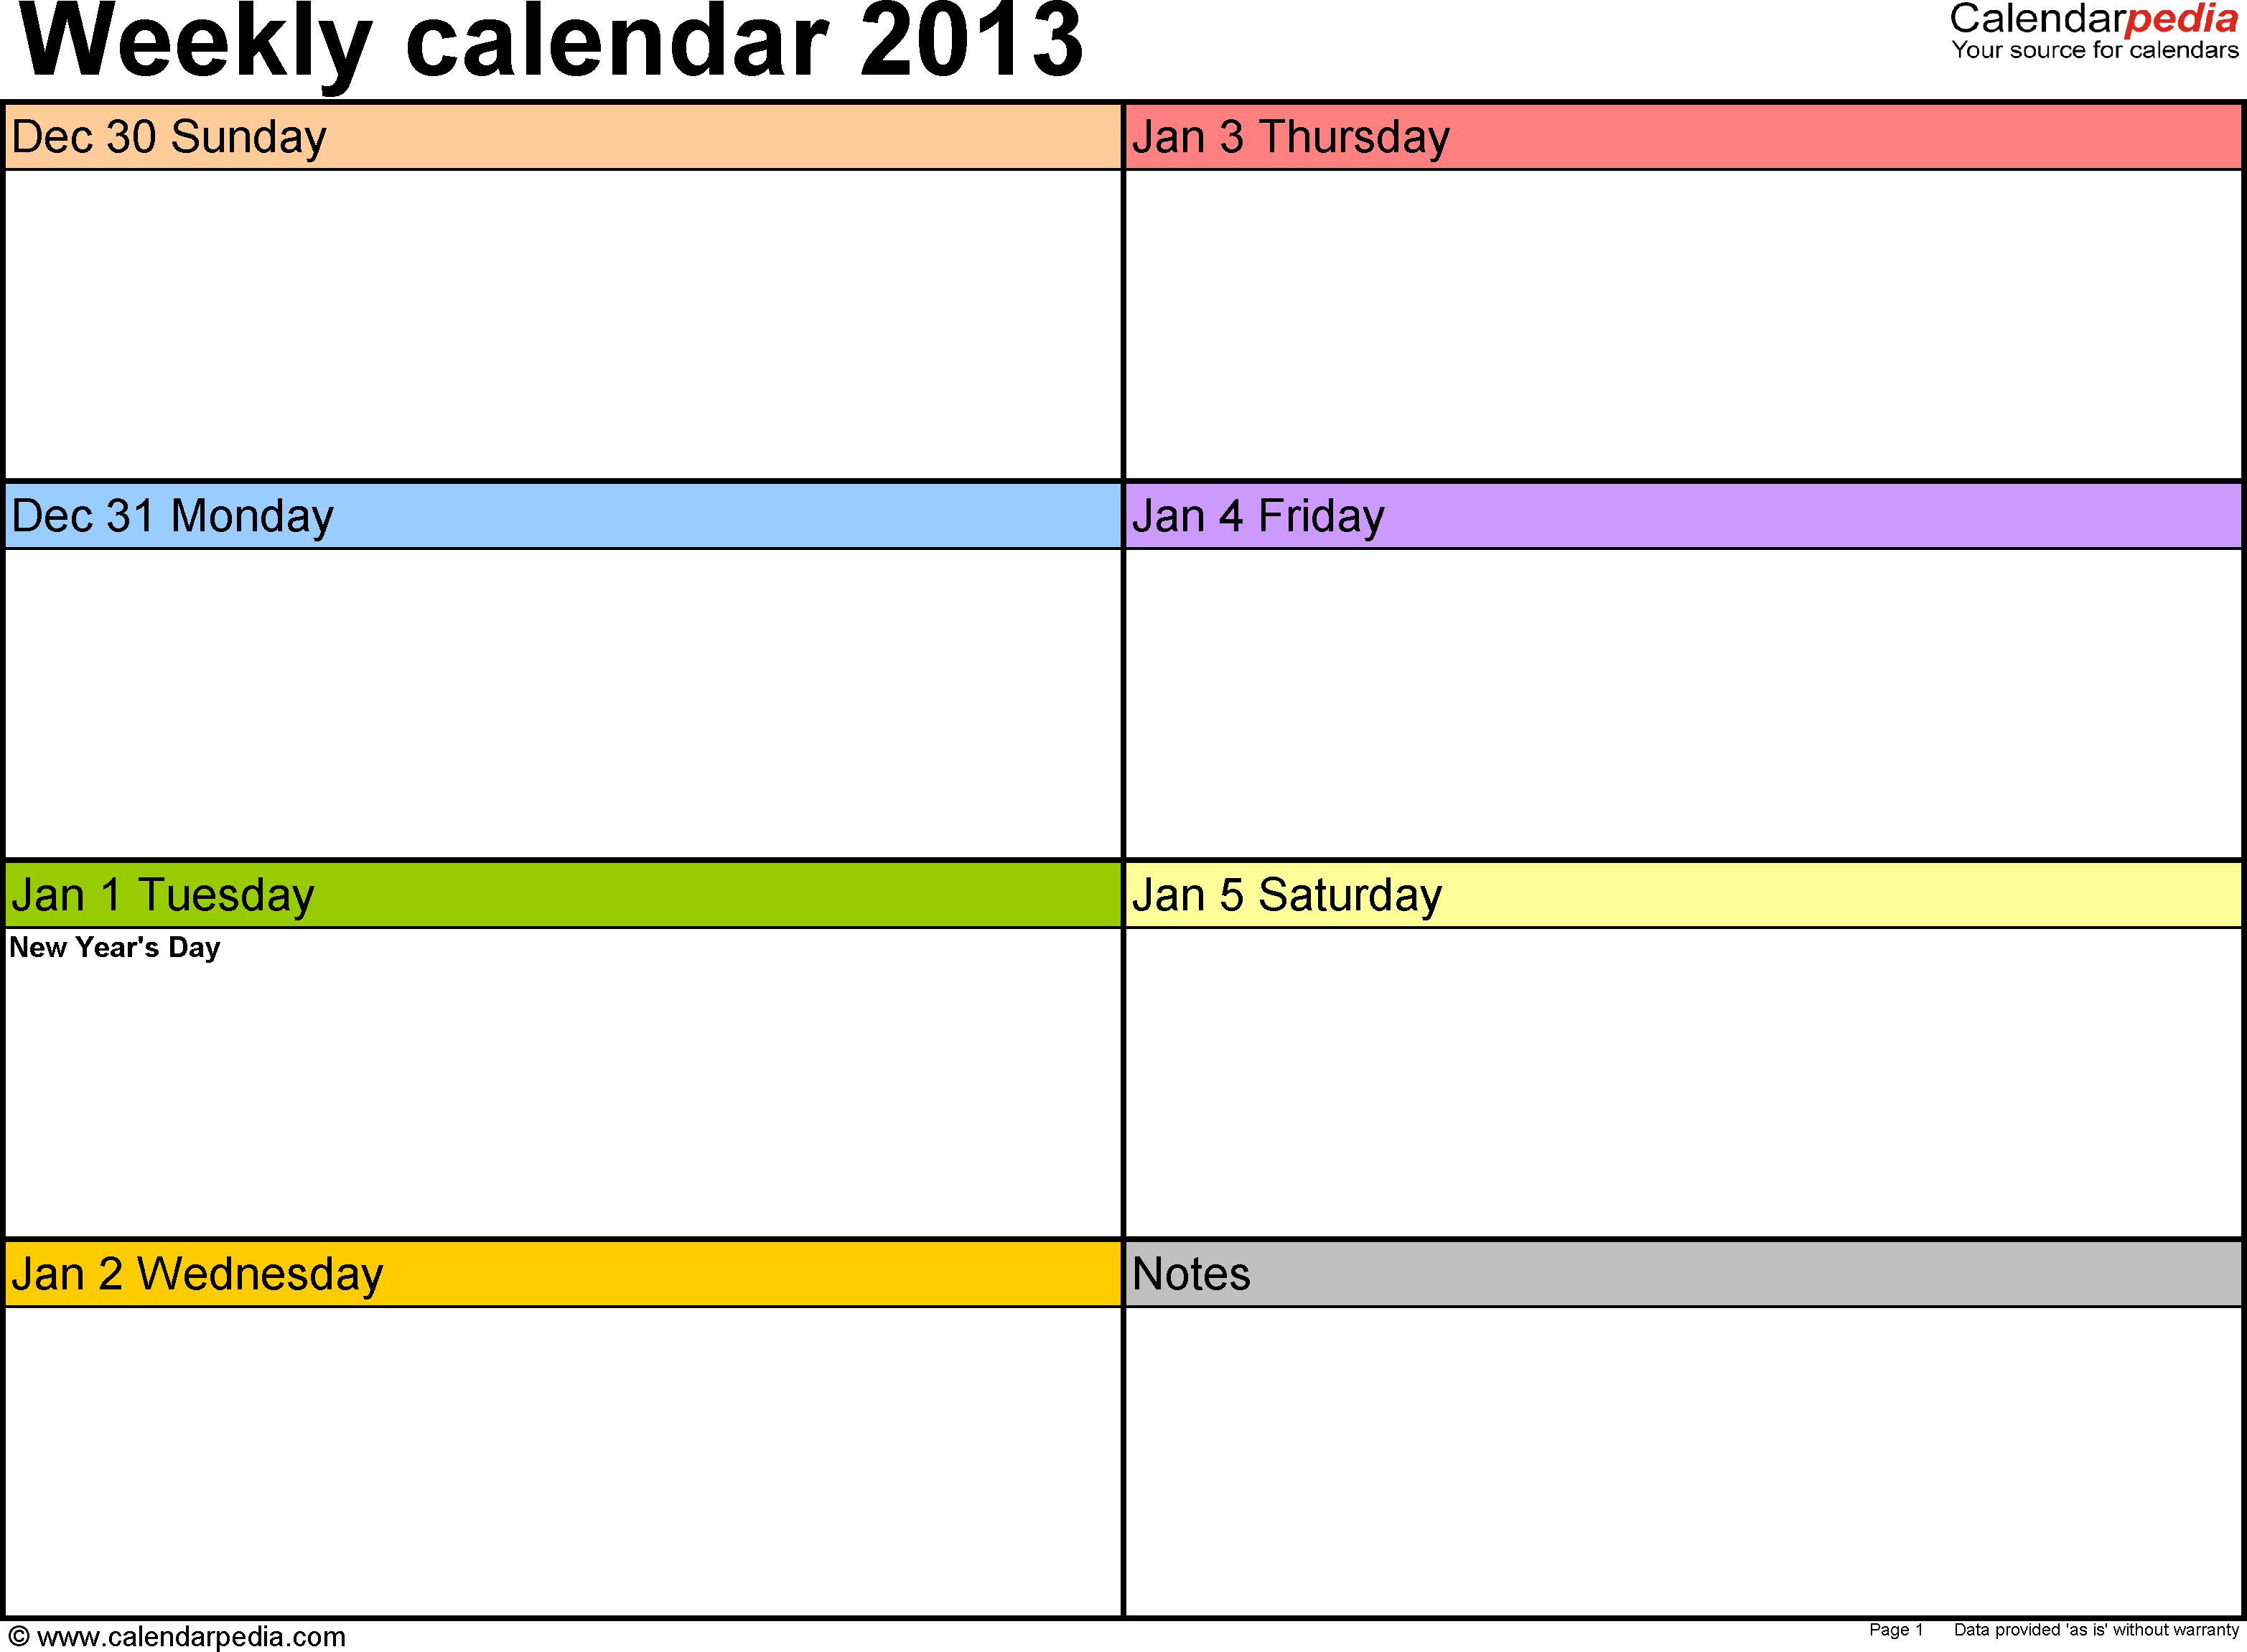 Weekly Calendar 2013 For Excel - 4 Free Printable Templates for Weekly Claendat Template For